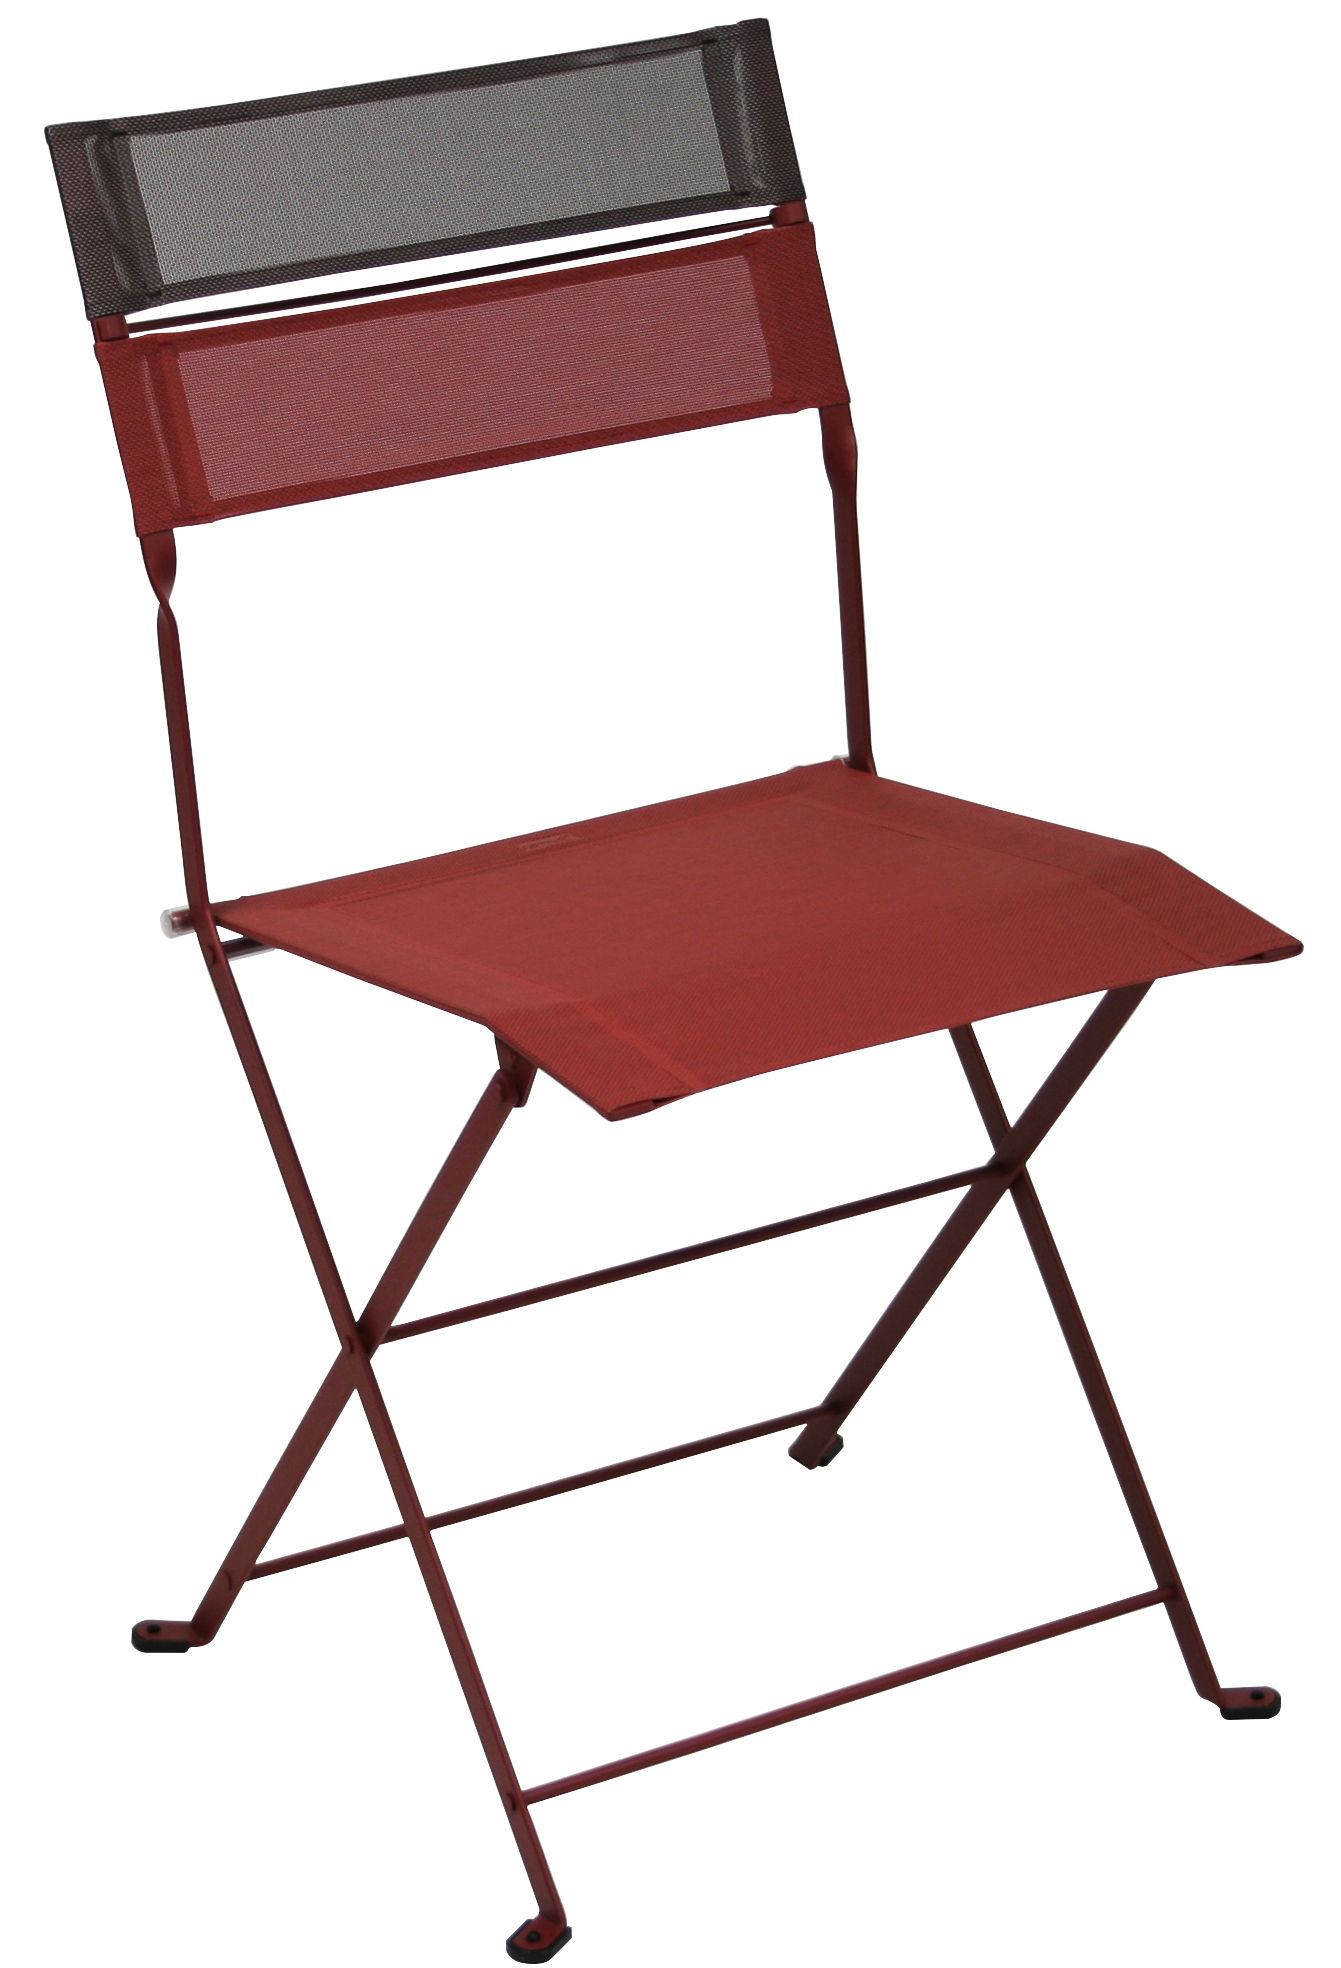 Furniture - Chairs - Latitude Folding chair by Fermob - Chili / Russet - Cloth, Lacquered steel